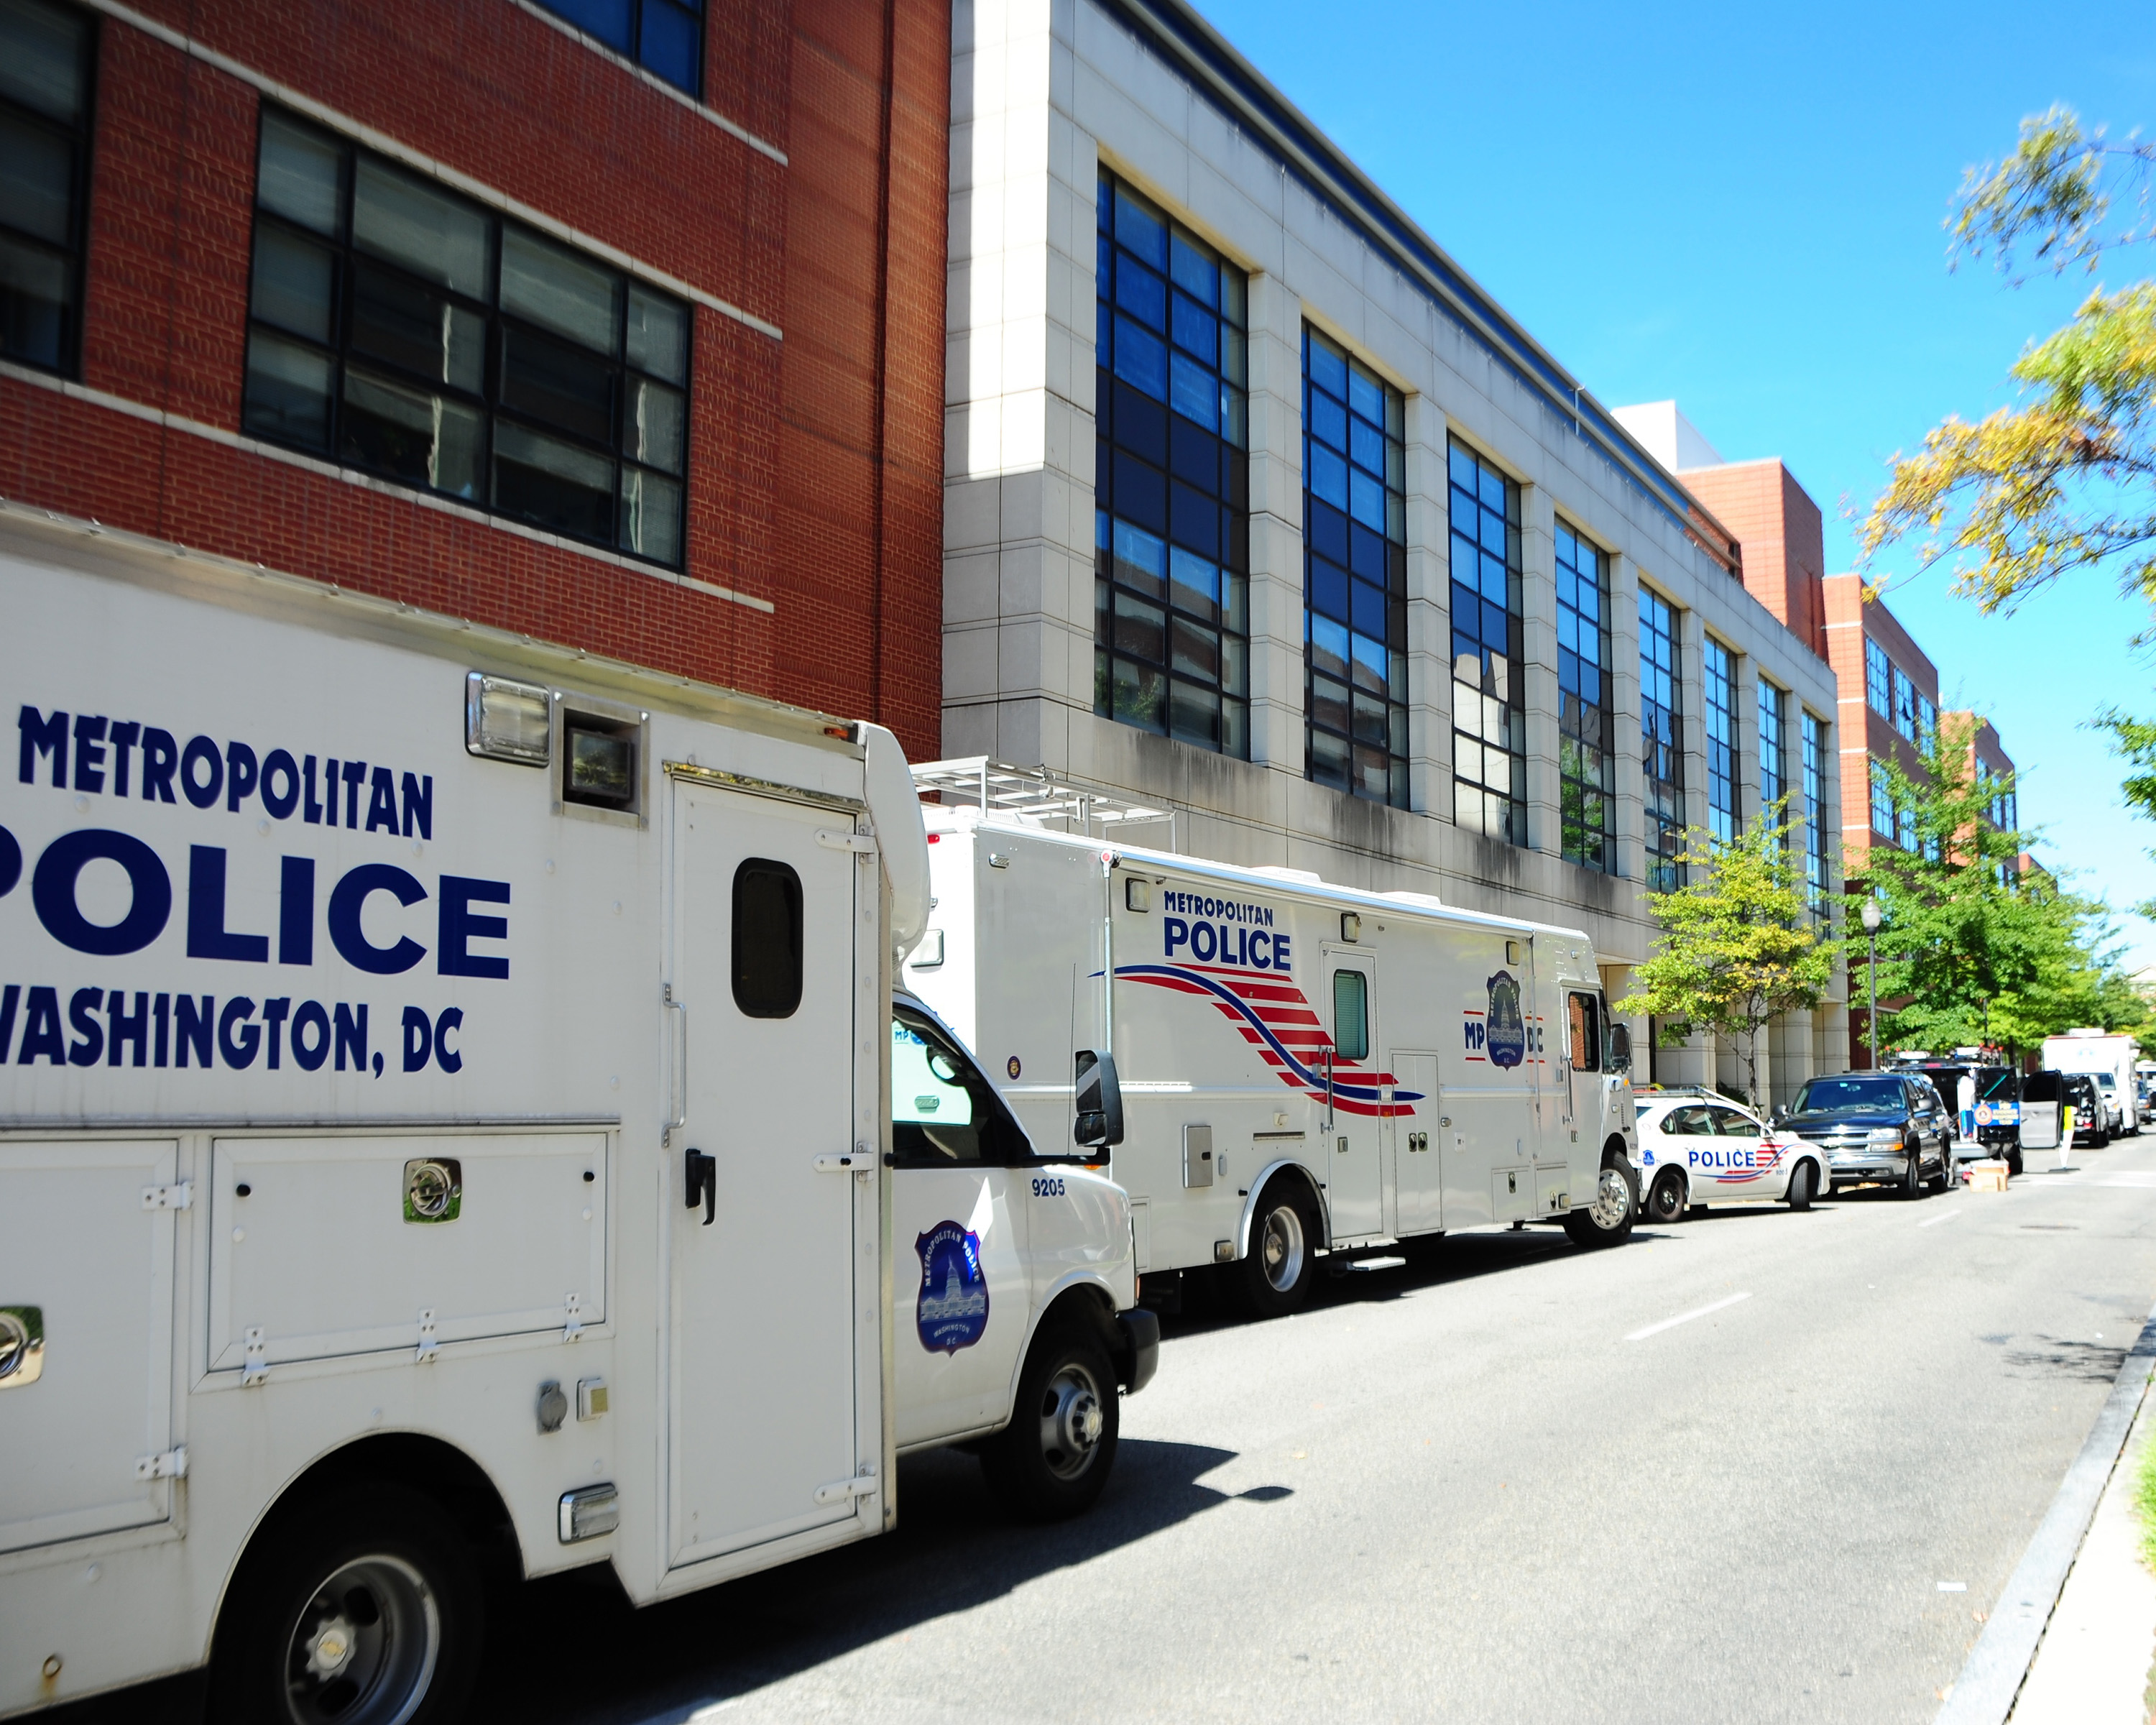 Federal Bureau of Investigation and the Metropolitan Police collect evidence at Building 197 on Sept. 18, 2013. US Navy Photo